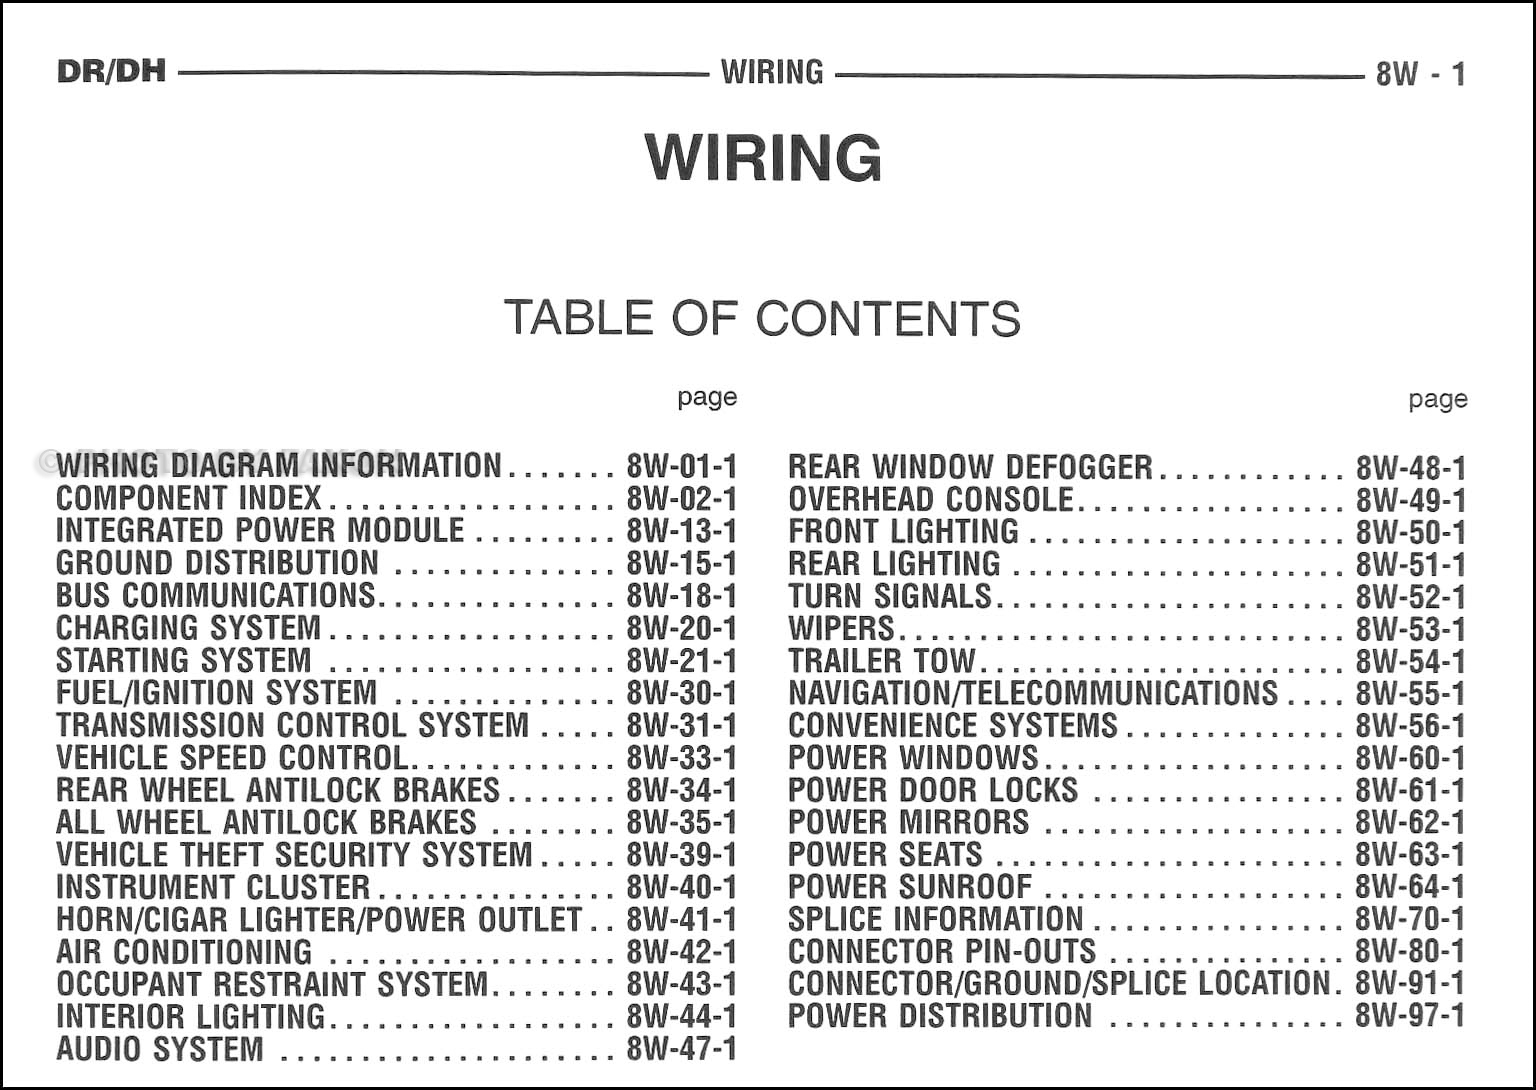 2005 Dodge Ram Truck Wiring Diagram Manual Original · Table of Contents Page